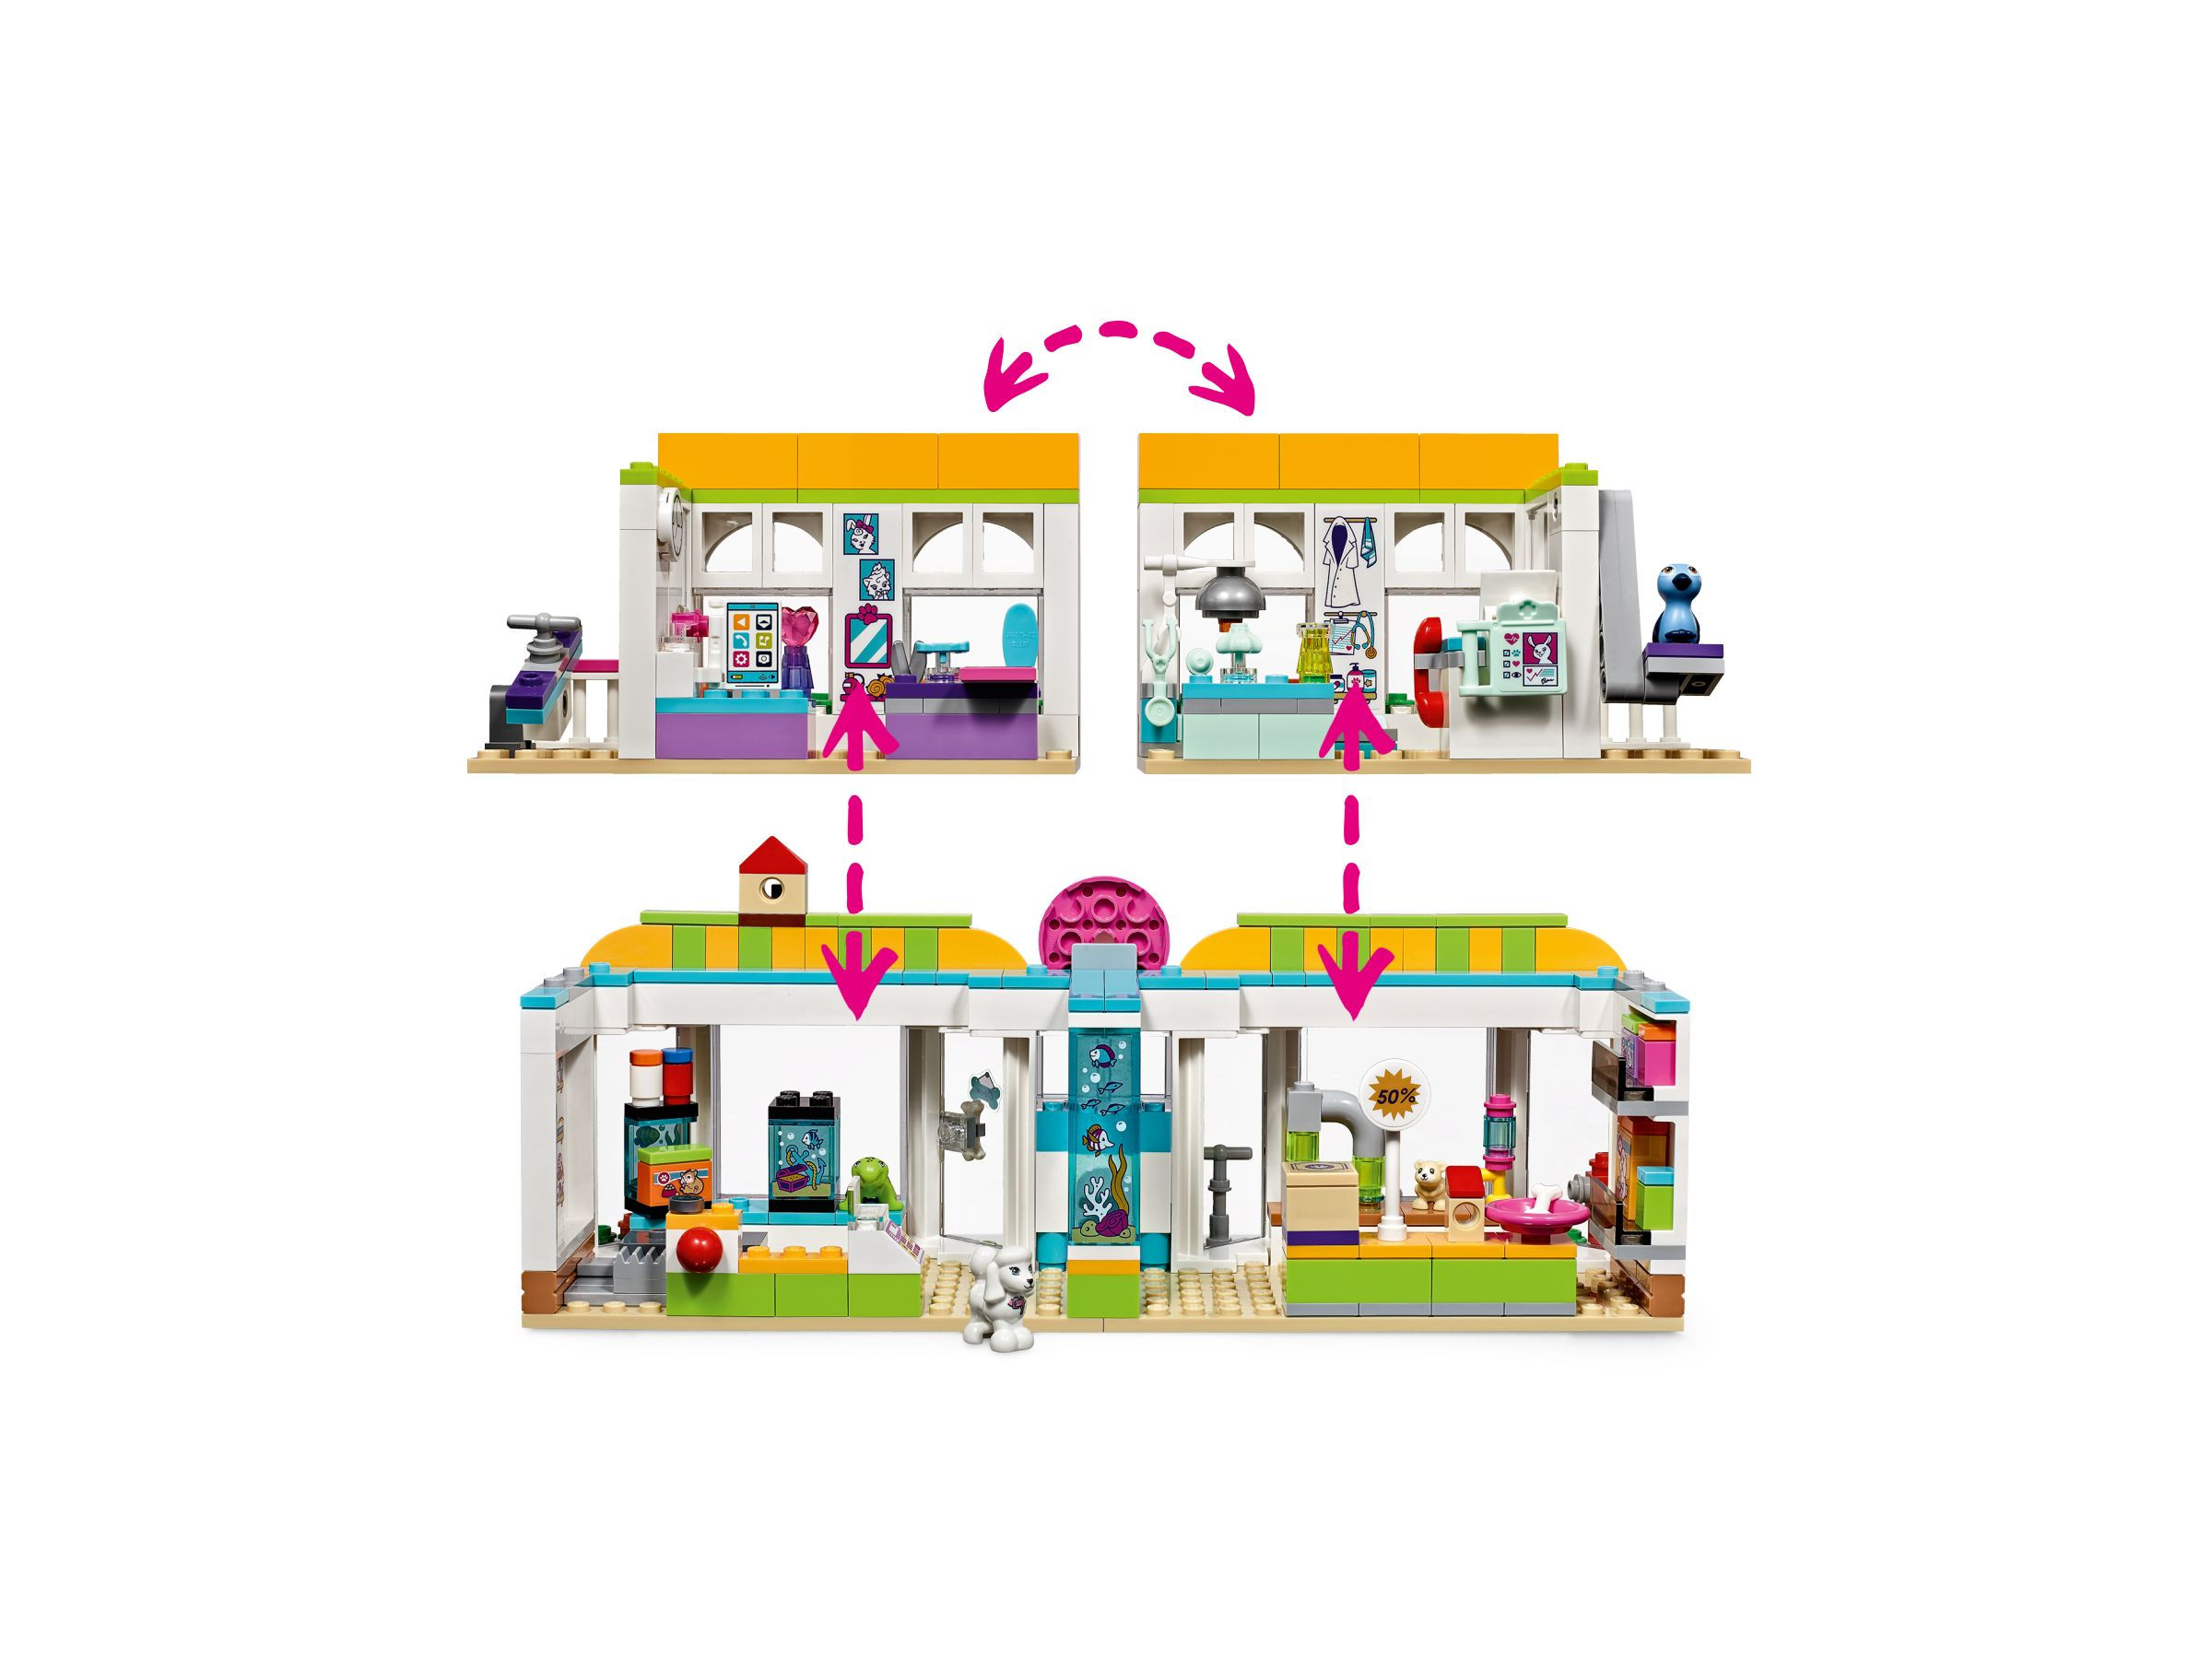 LEGO Friends 41345 Heartlake City Haustierzentrum LEGO_41345_alt2.jpg